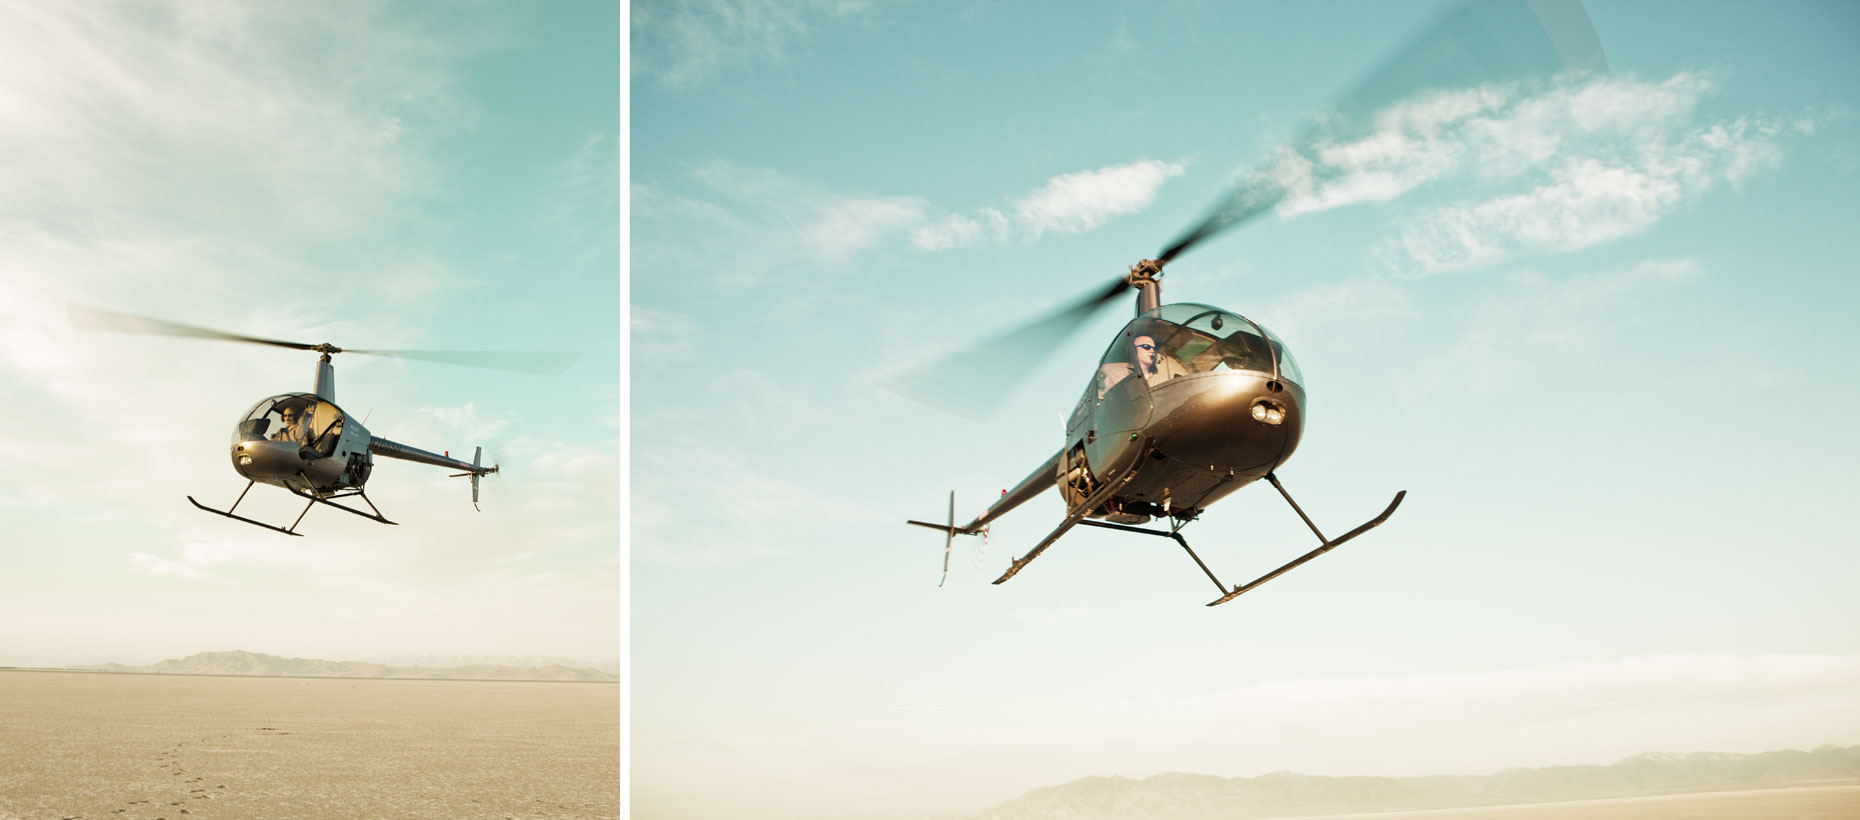 Upper Limit Aviation | Helicopters | Skylar Nielsen Photography